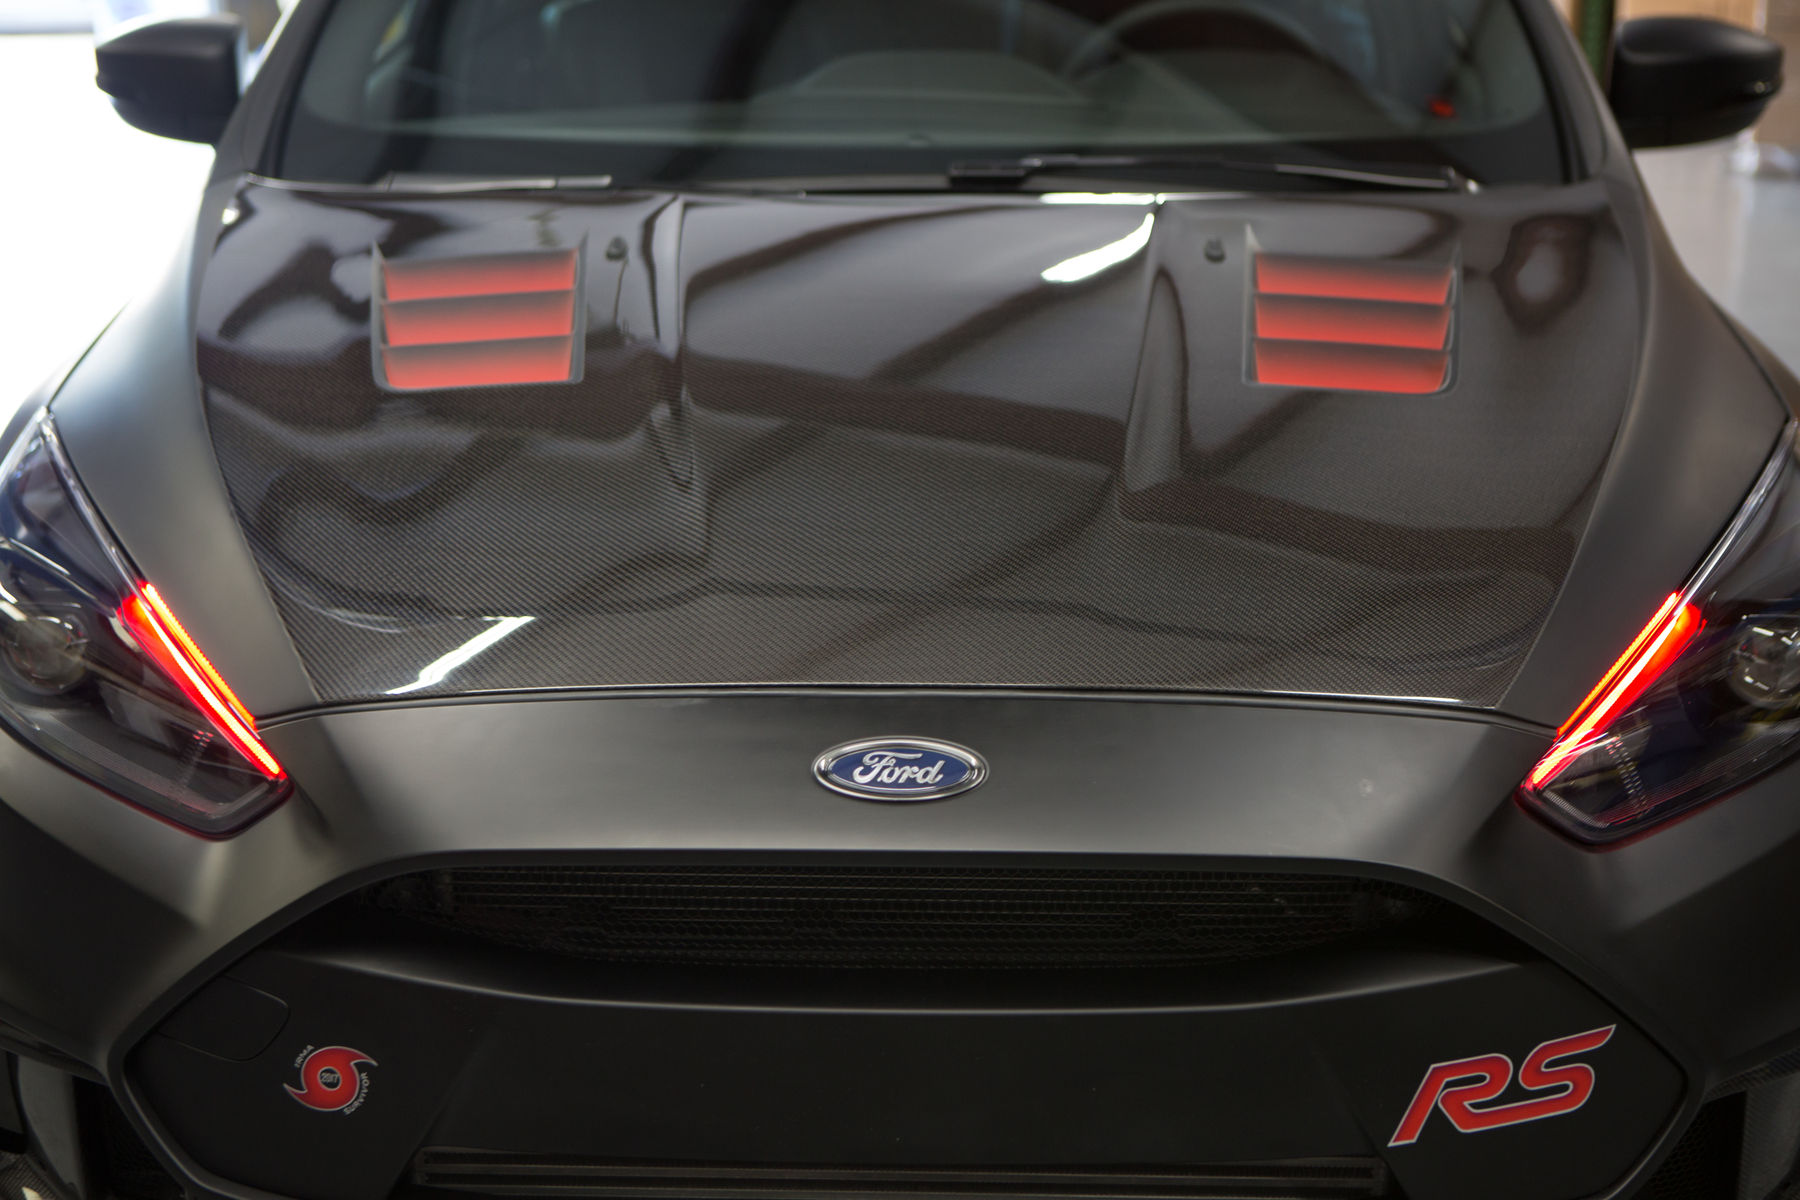 2017 Ford Focus Rs Triathlete By Vmp Performance Anderson Composites Carbon Fiber Hood Fordsema